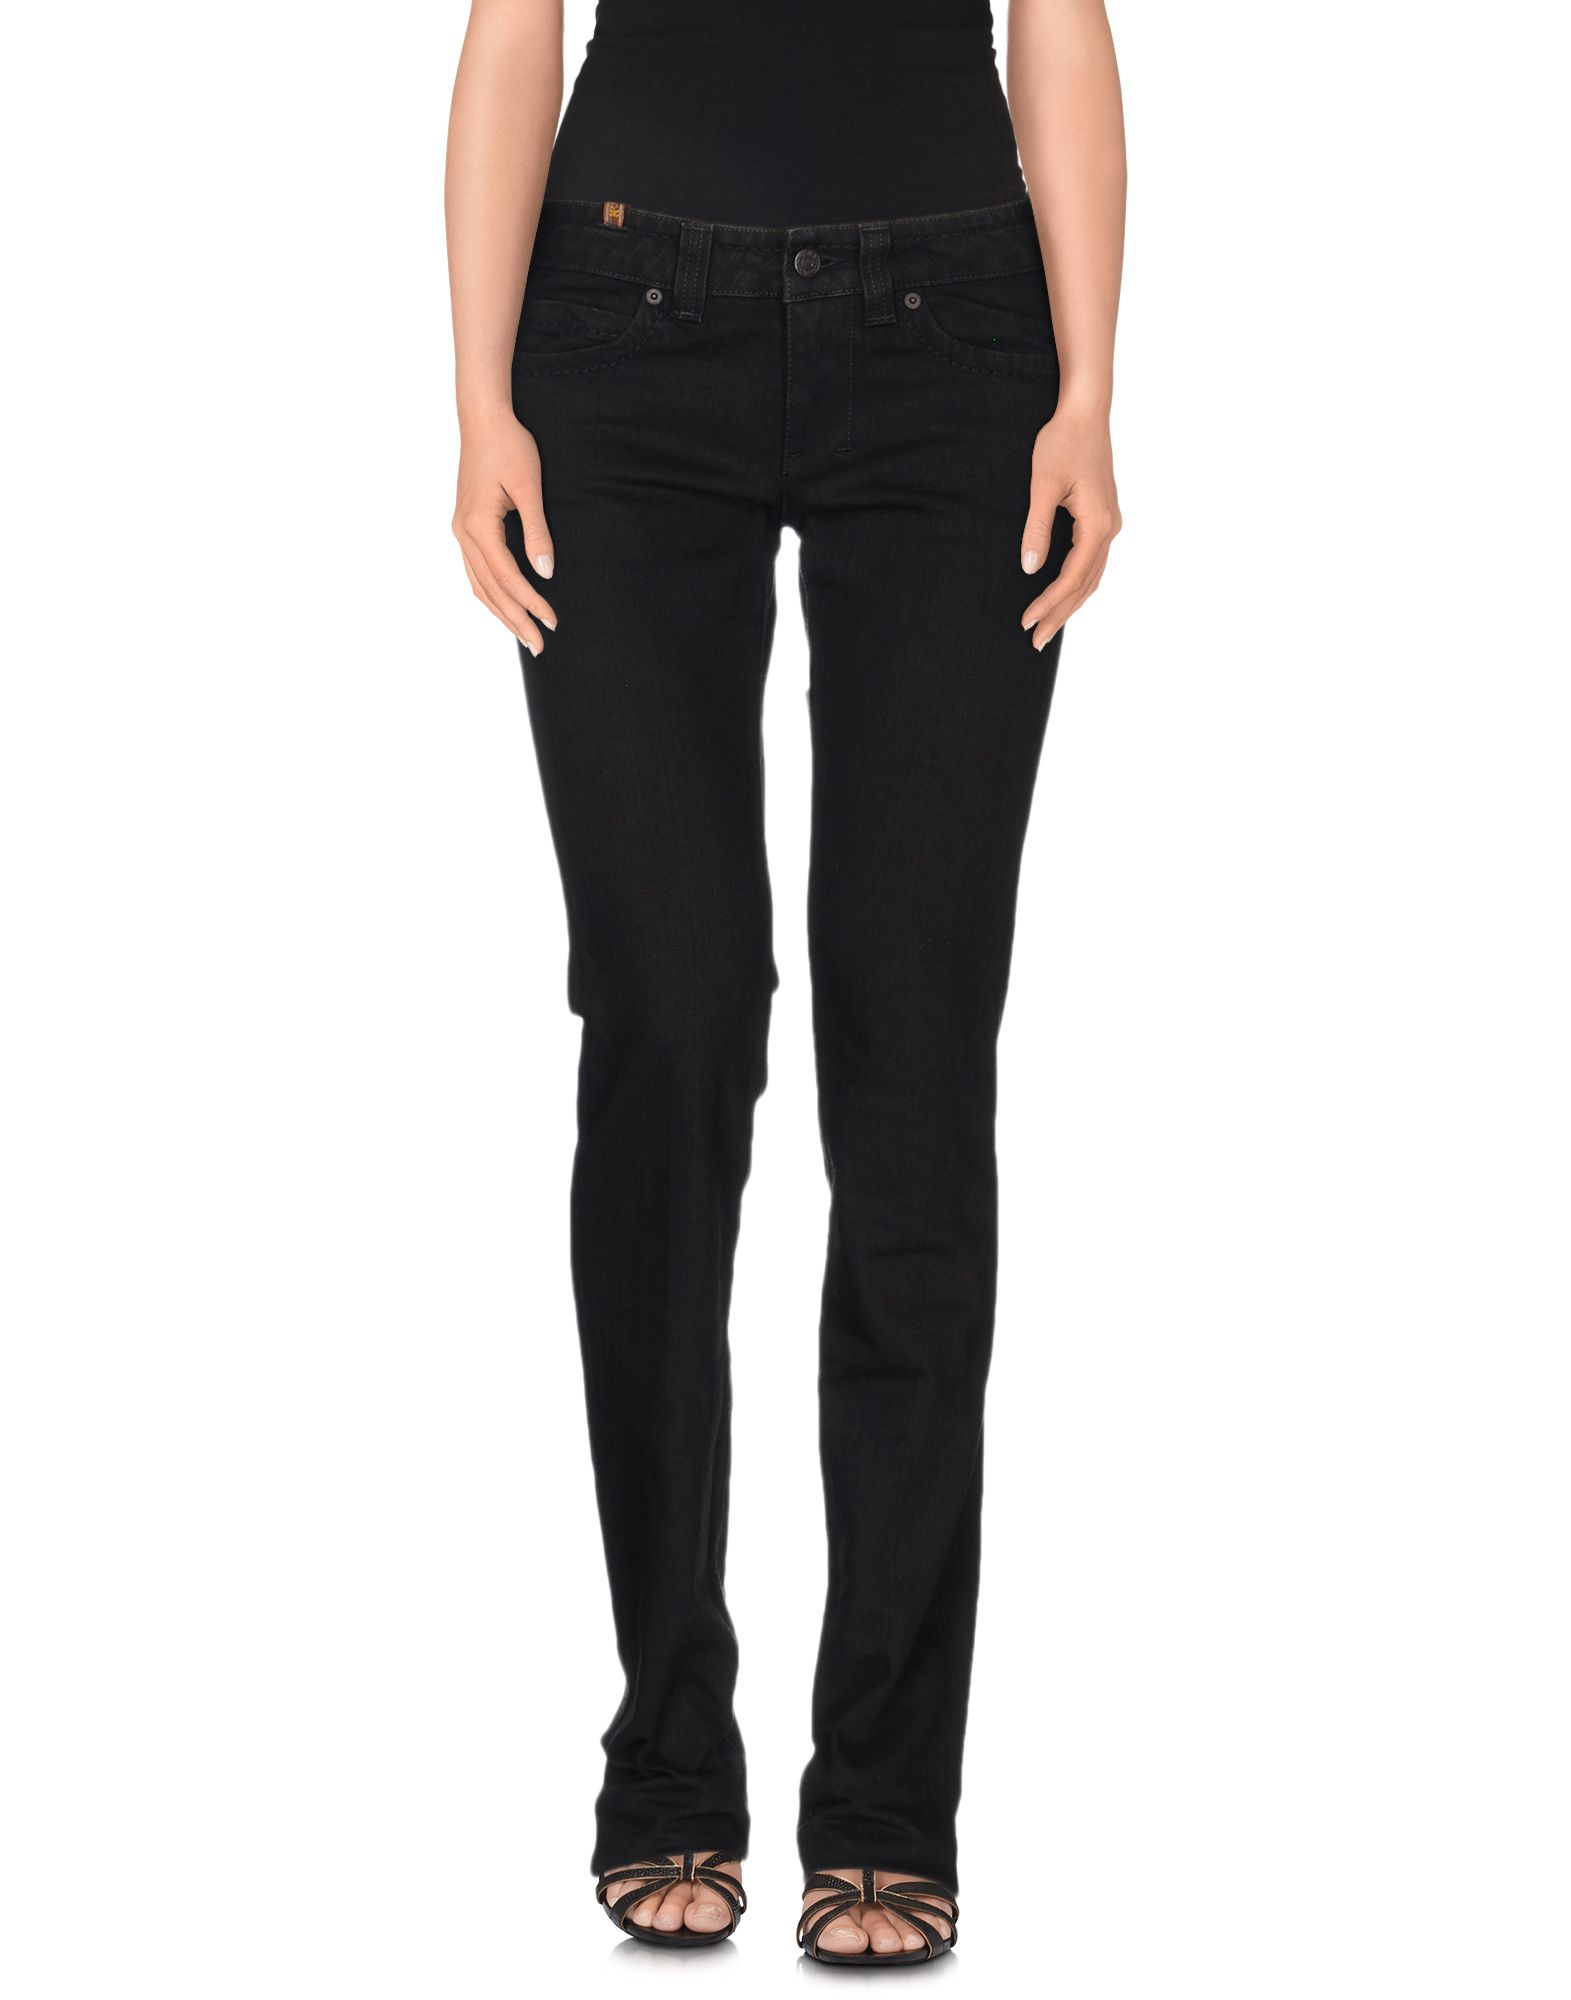 NOTIFY Dahlia High-Rise Flared Jeans in Black